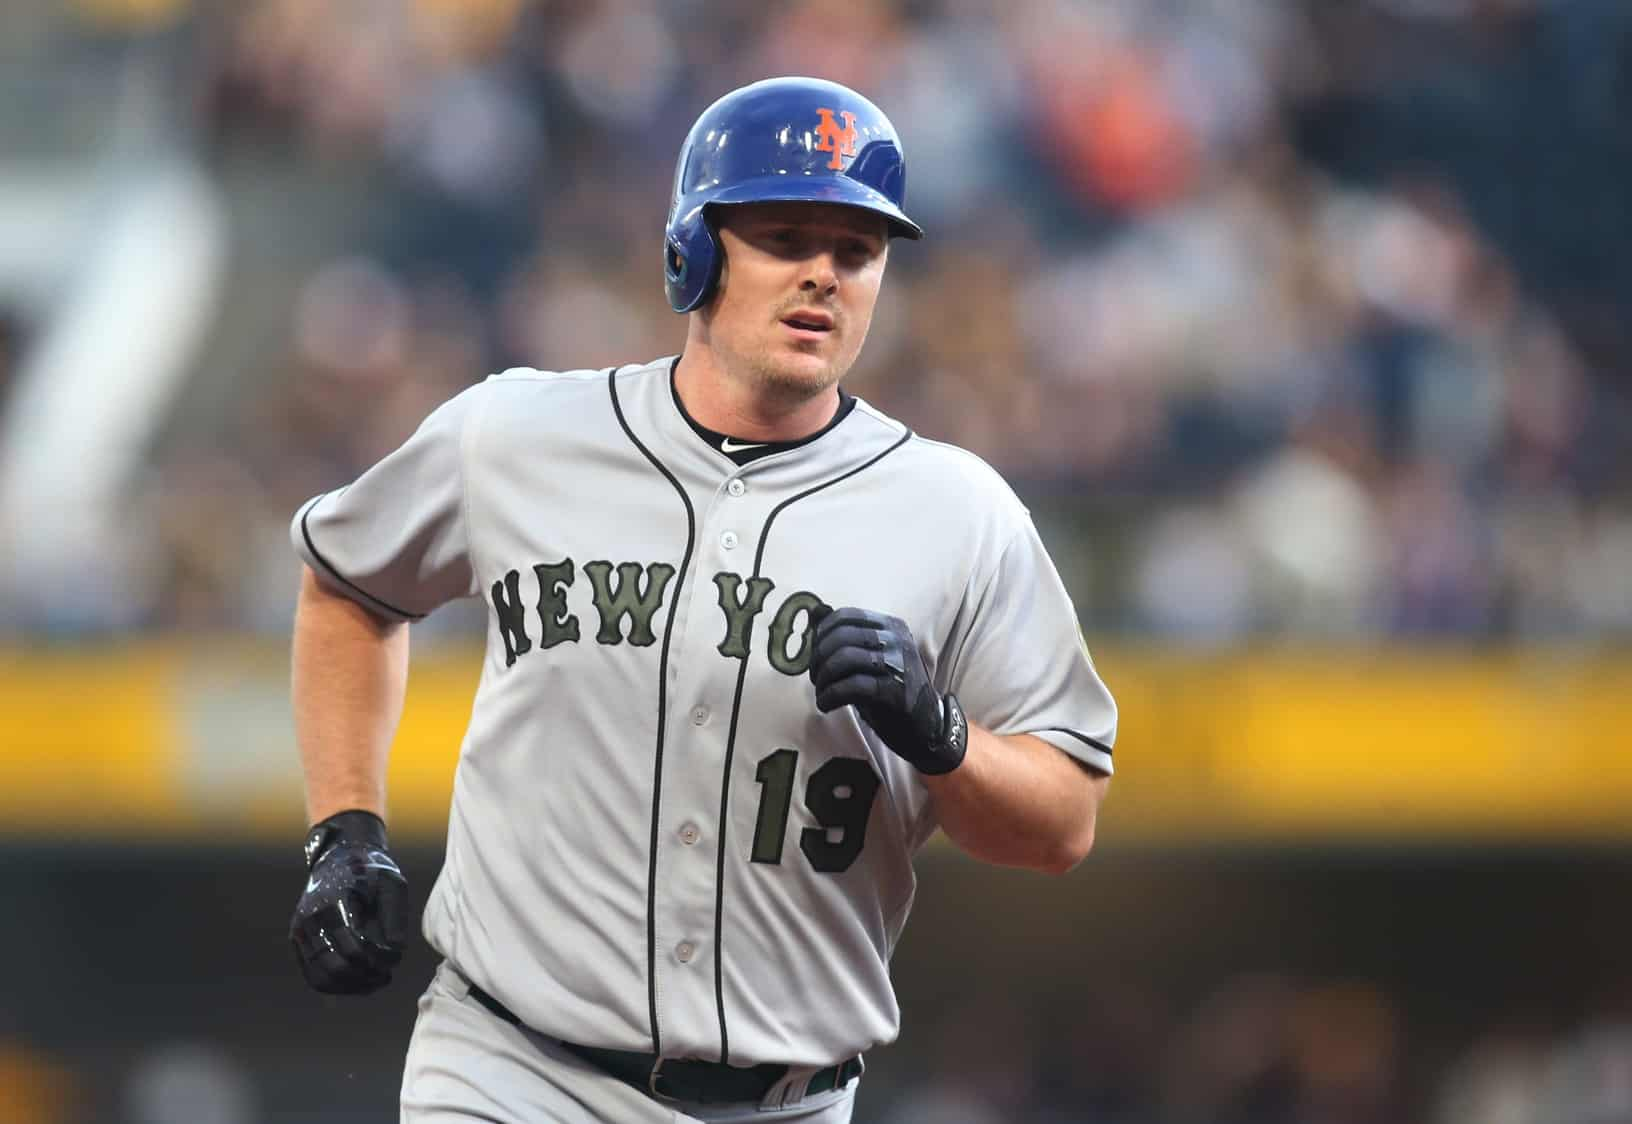 Jay Bruce is one of the MLB stars that could be traded in 2017